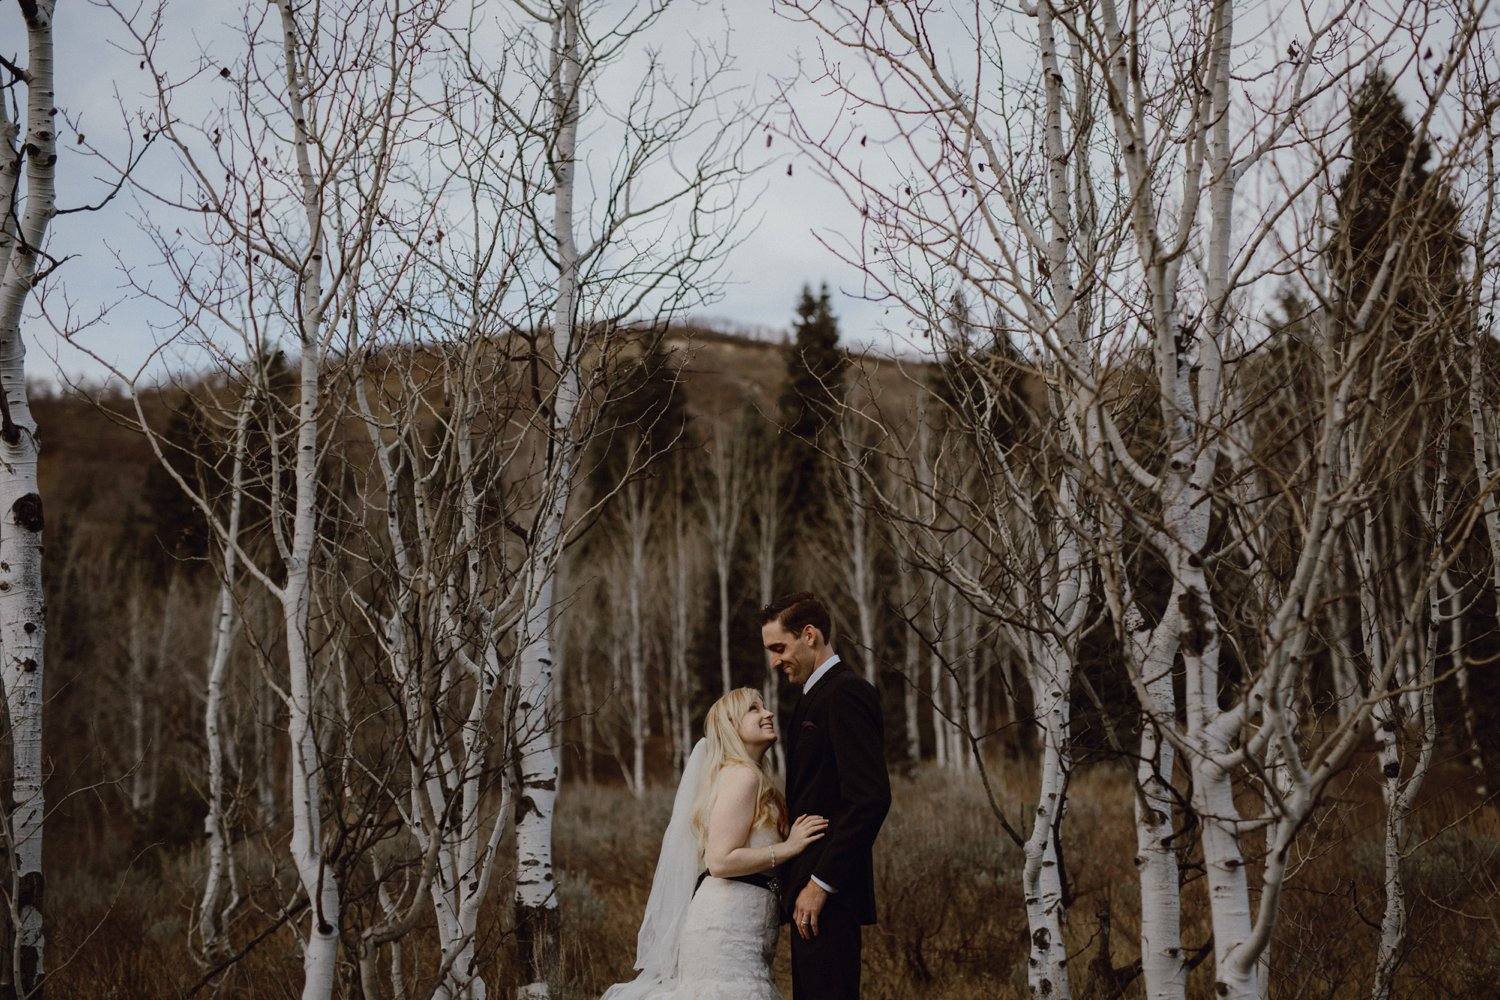 A wedding photo with Aspen trees